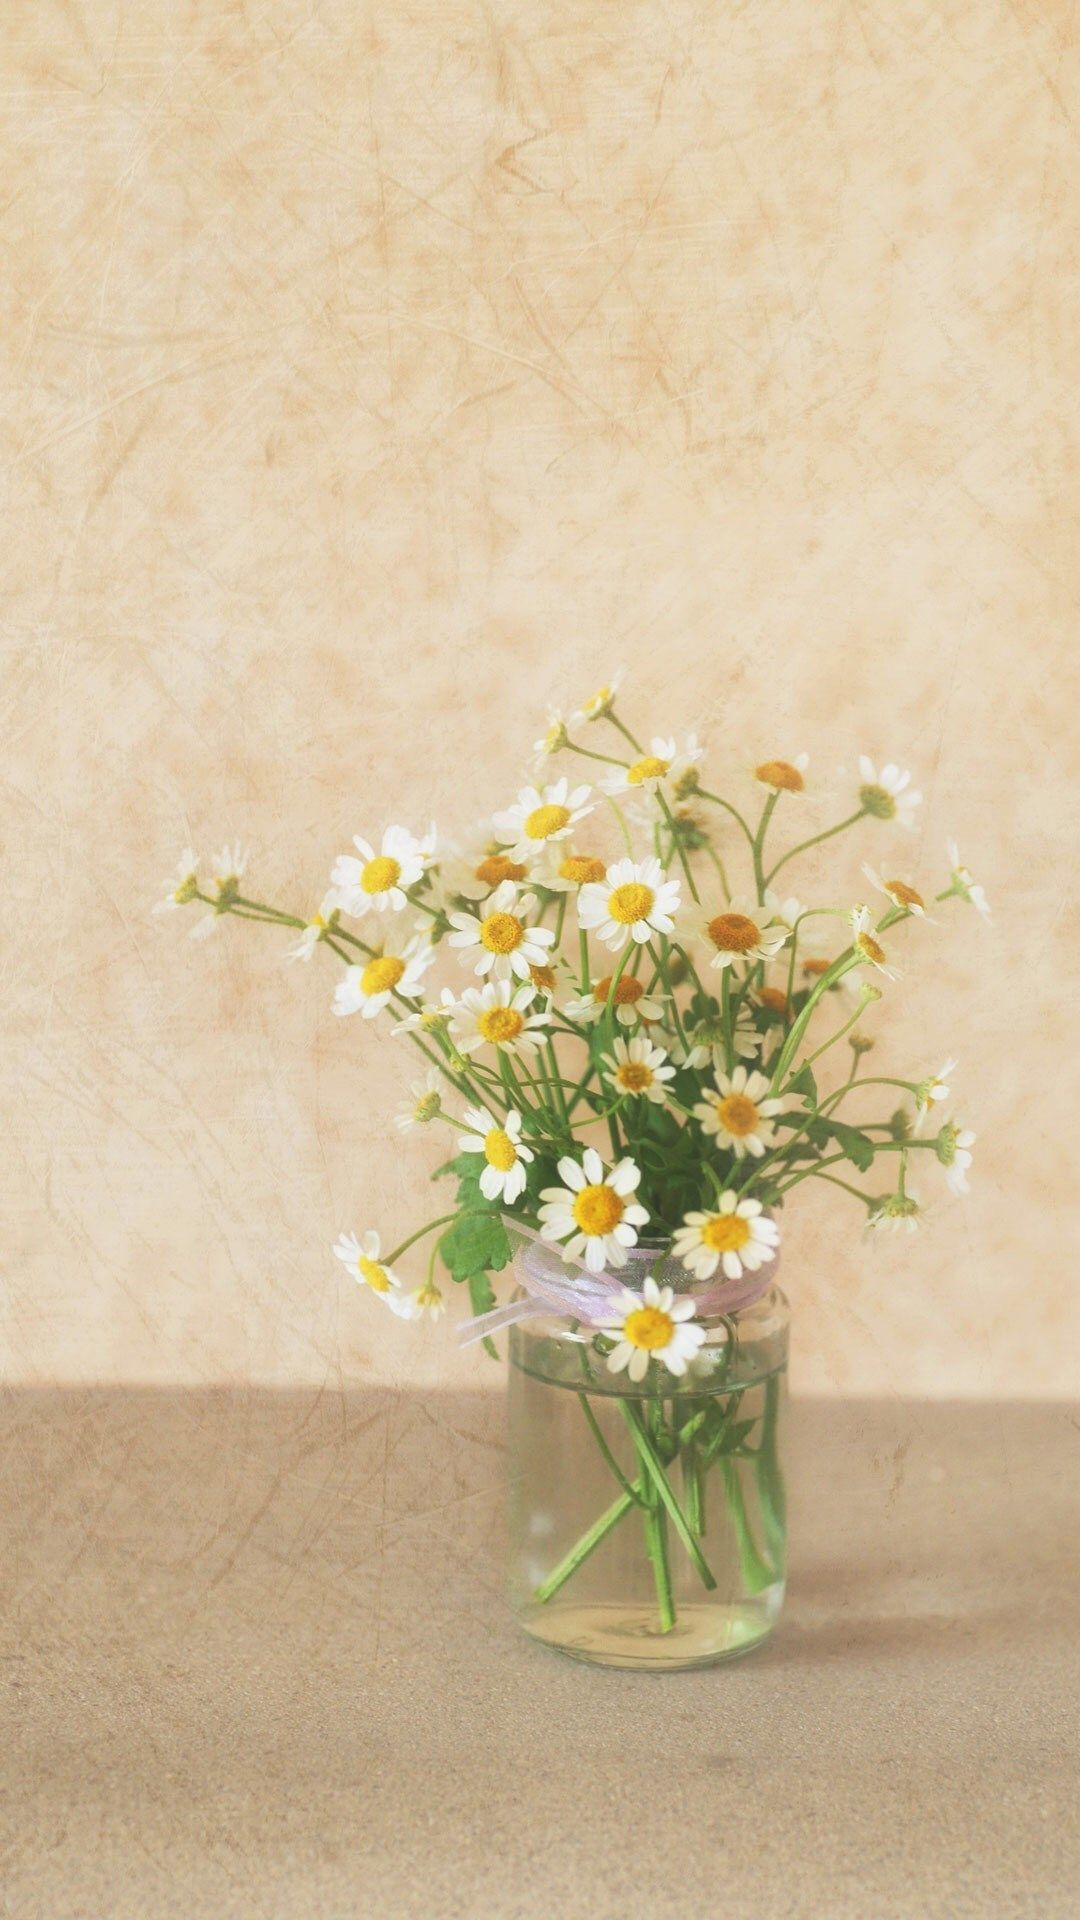 Pure Simple Daisy Flower Water Glass Vase iPhone 6